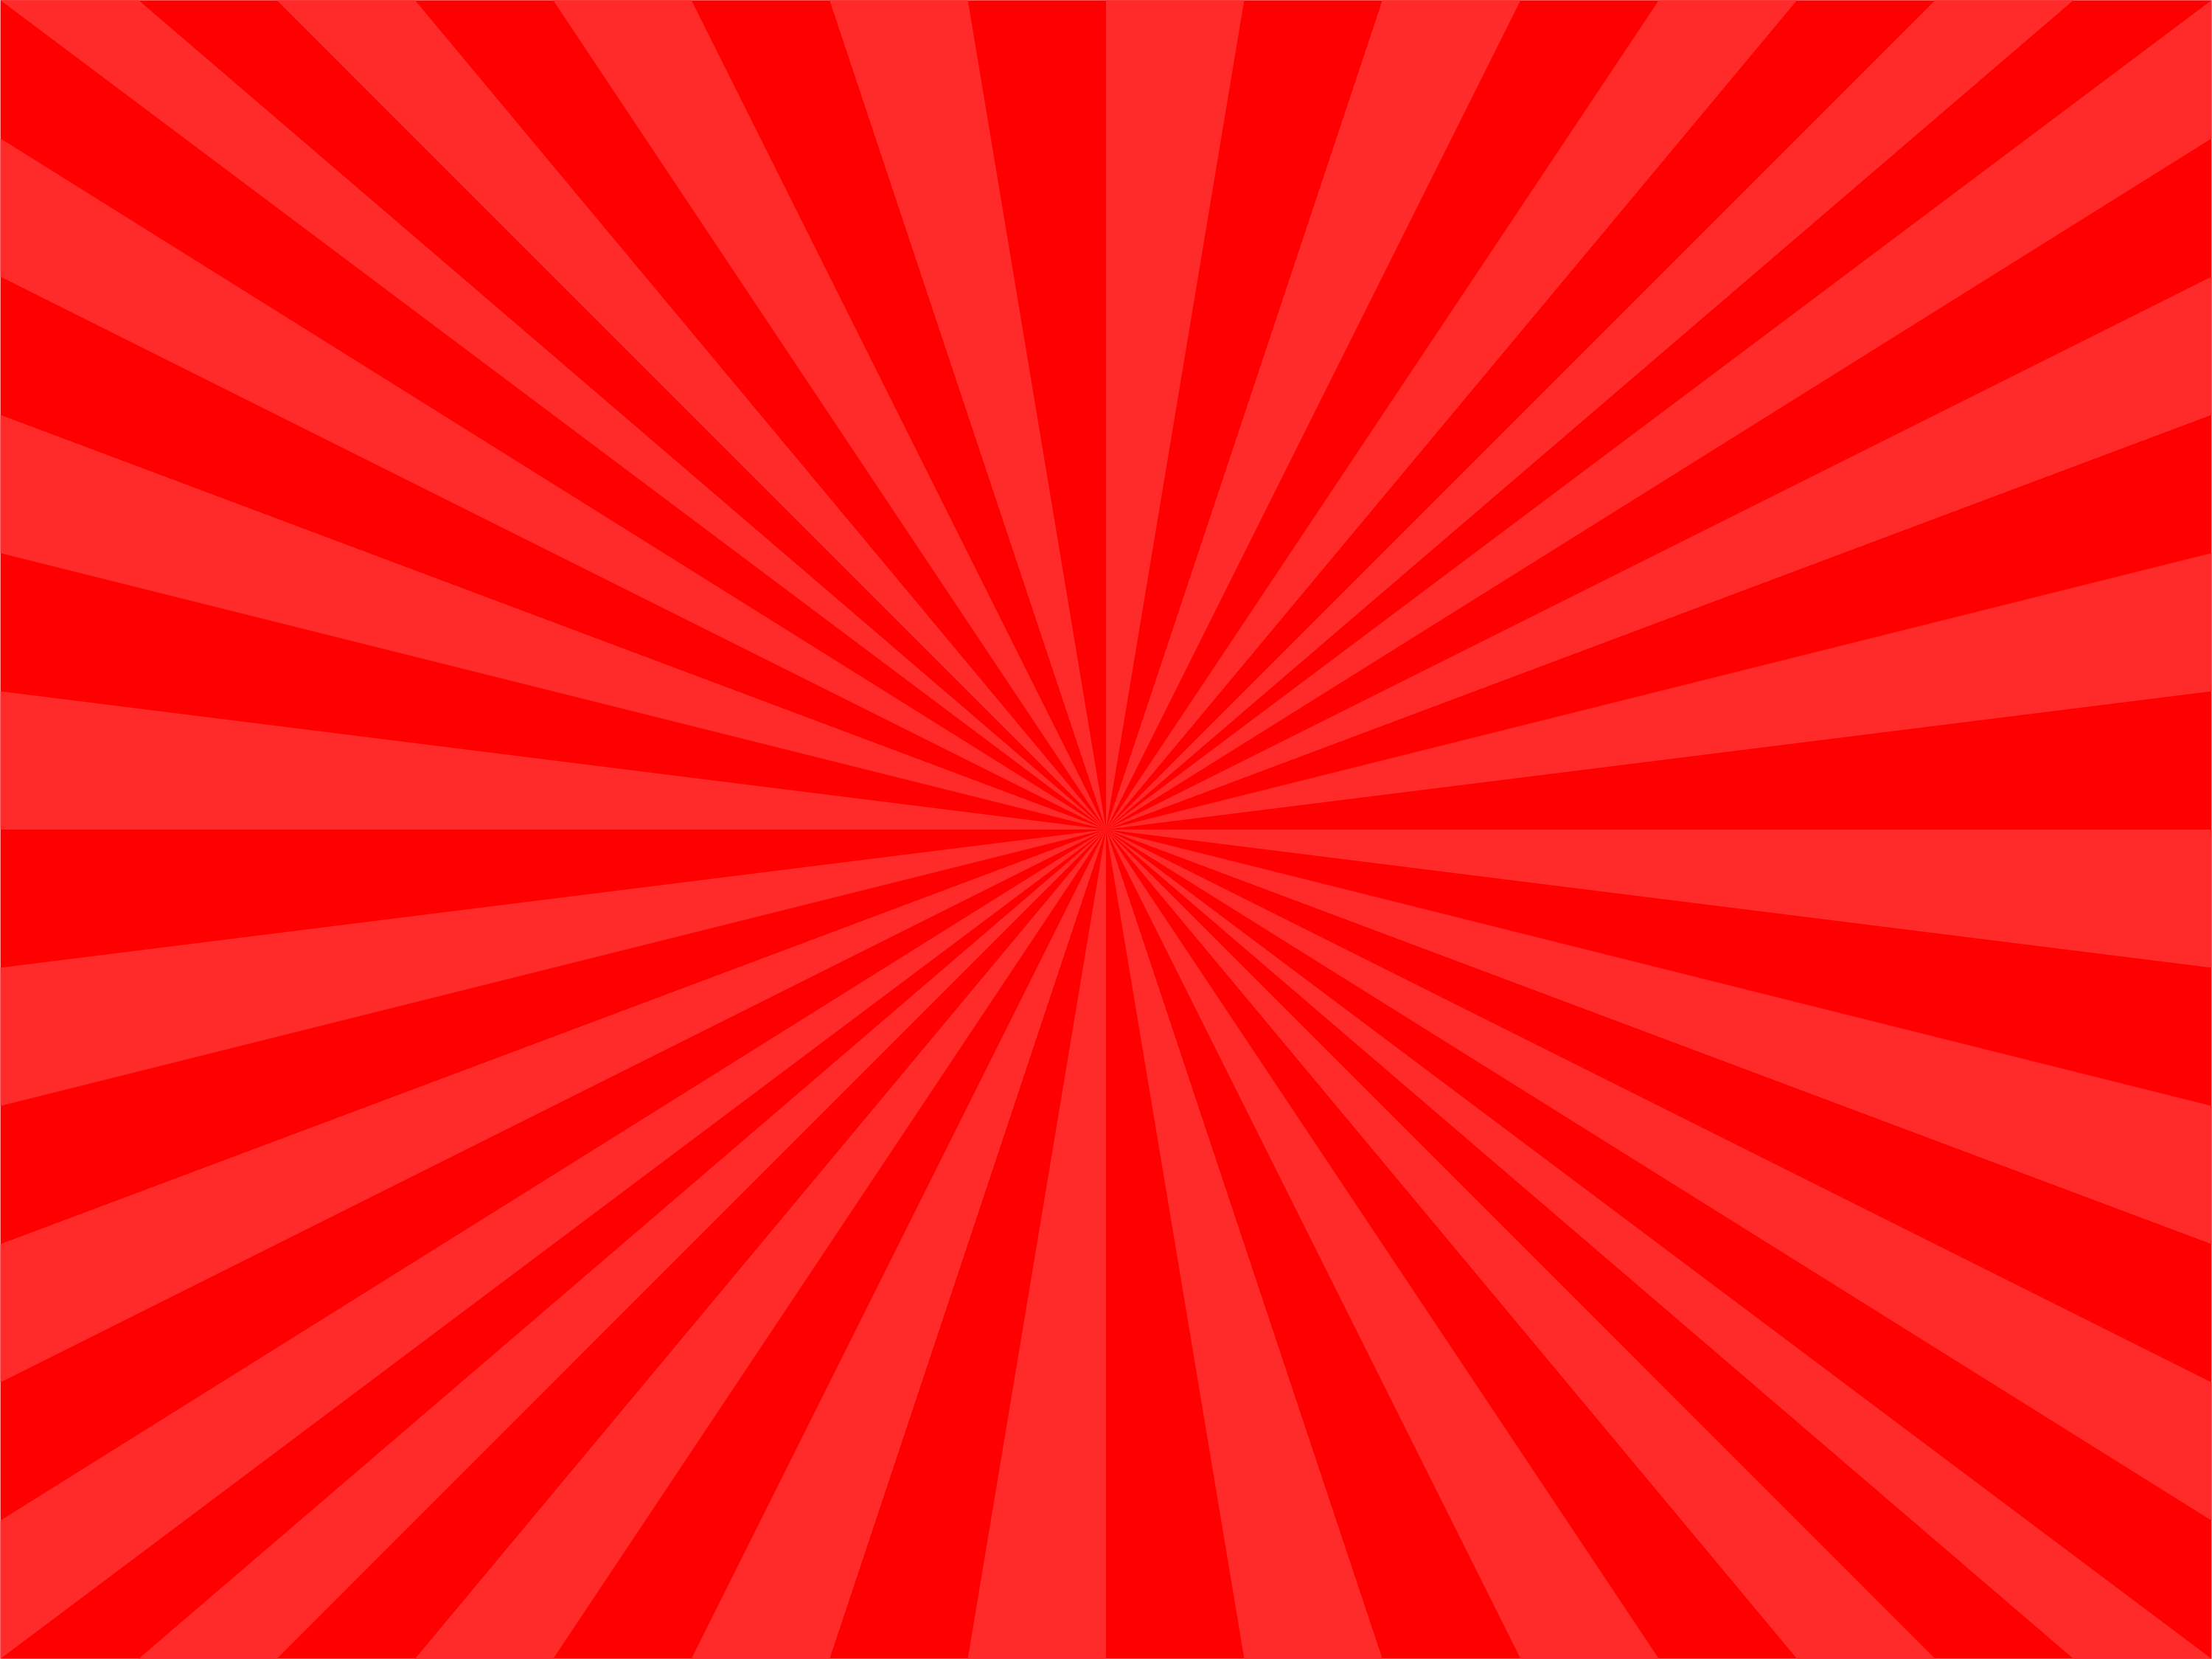 4 Burst Focus Abstract Background Png Onlygfx Com